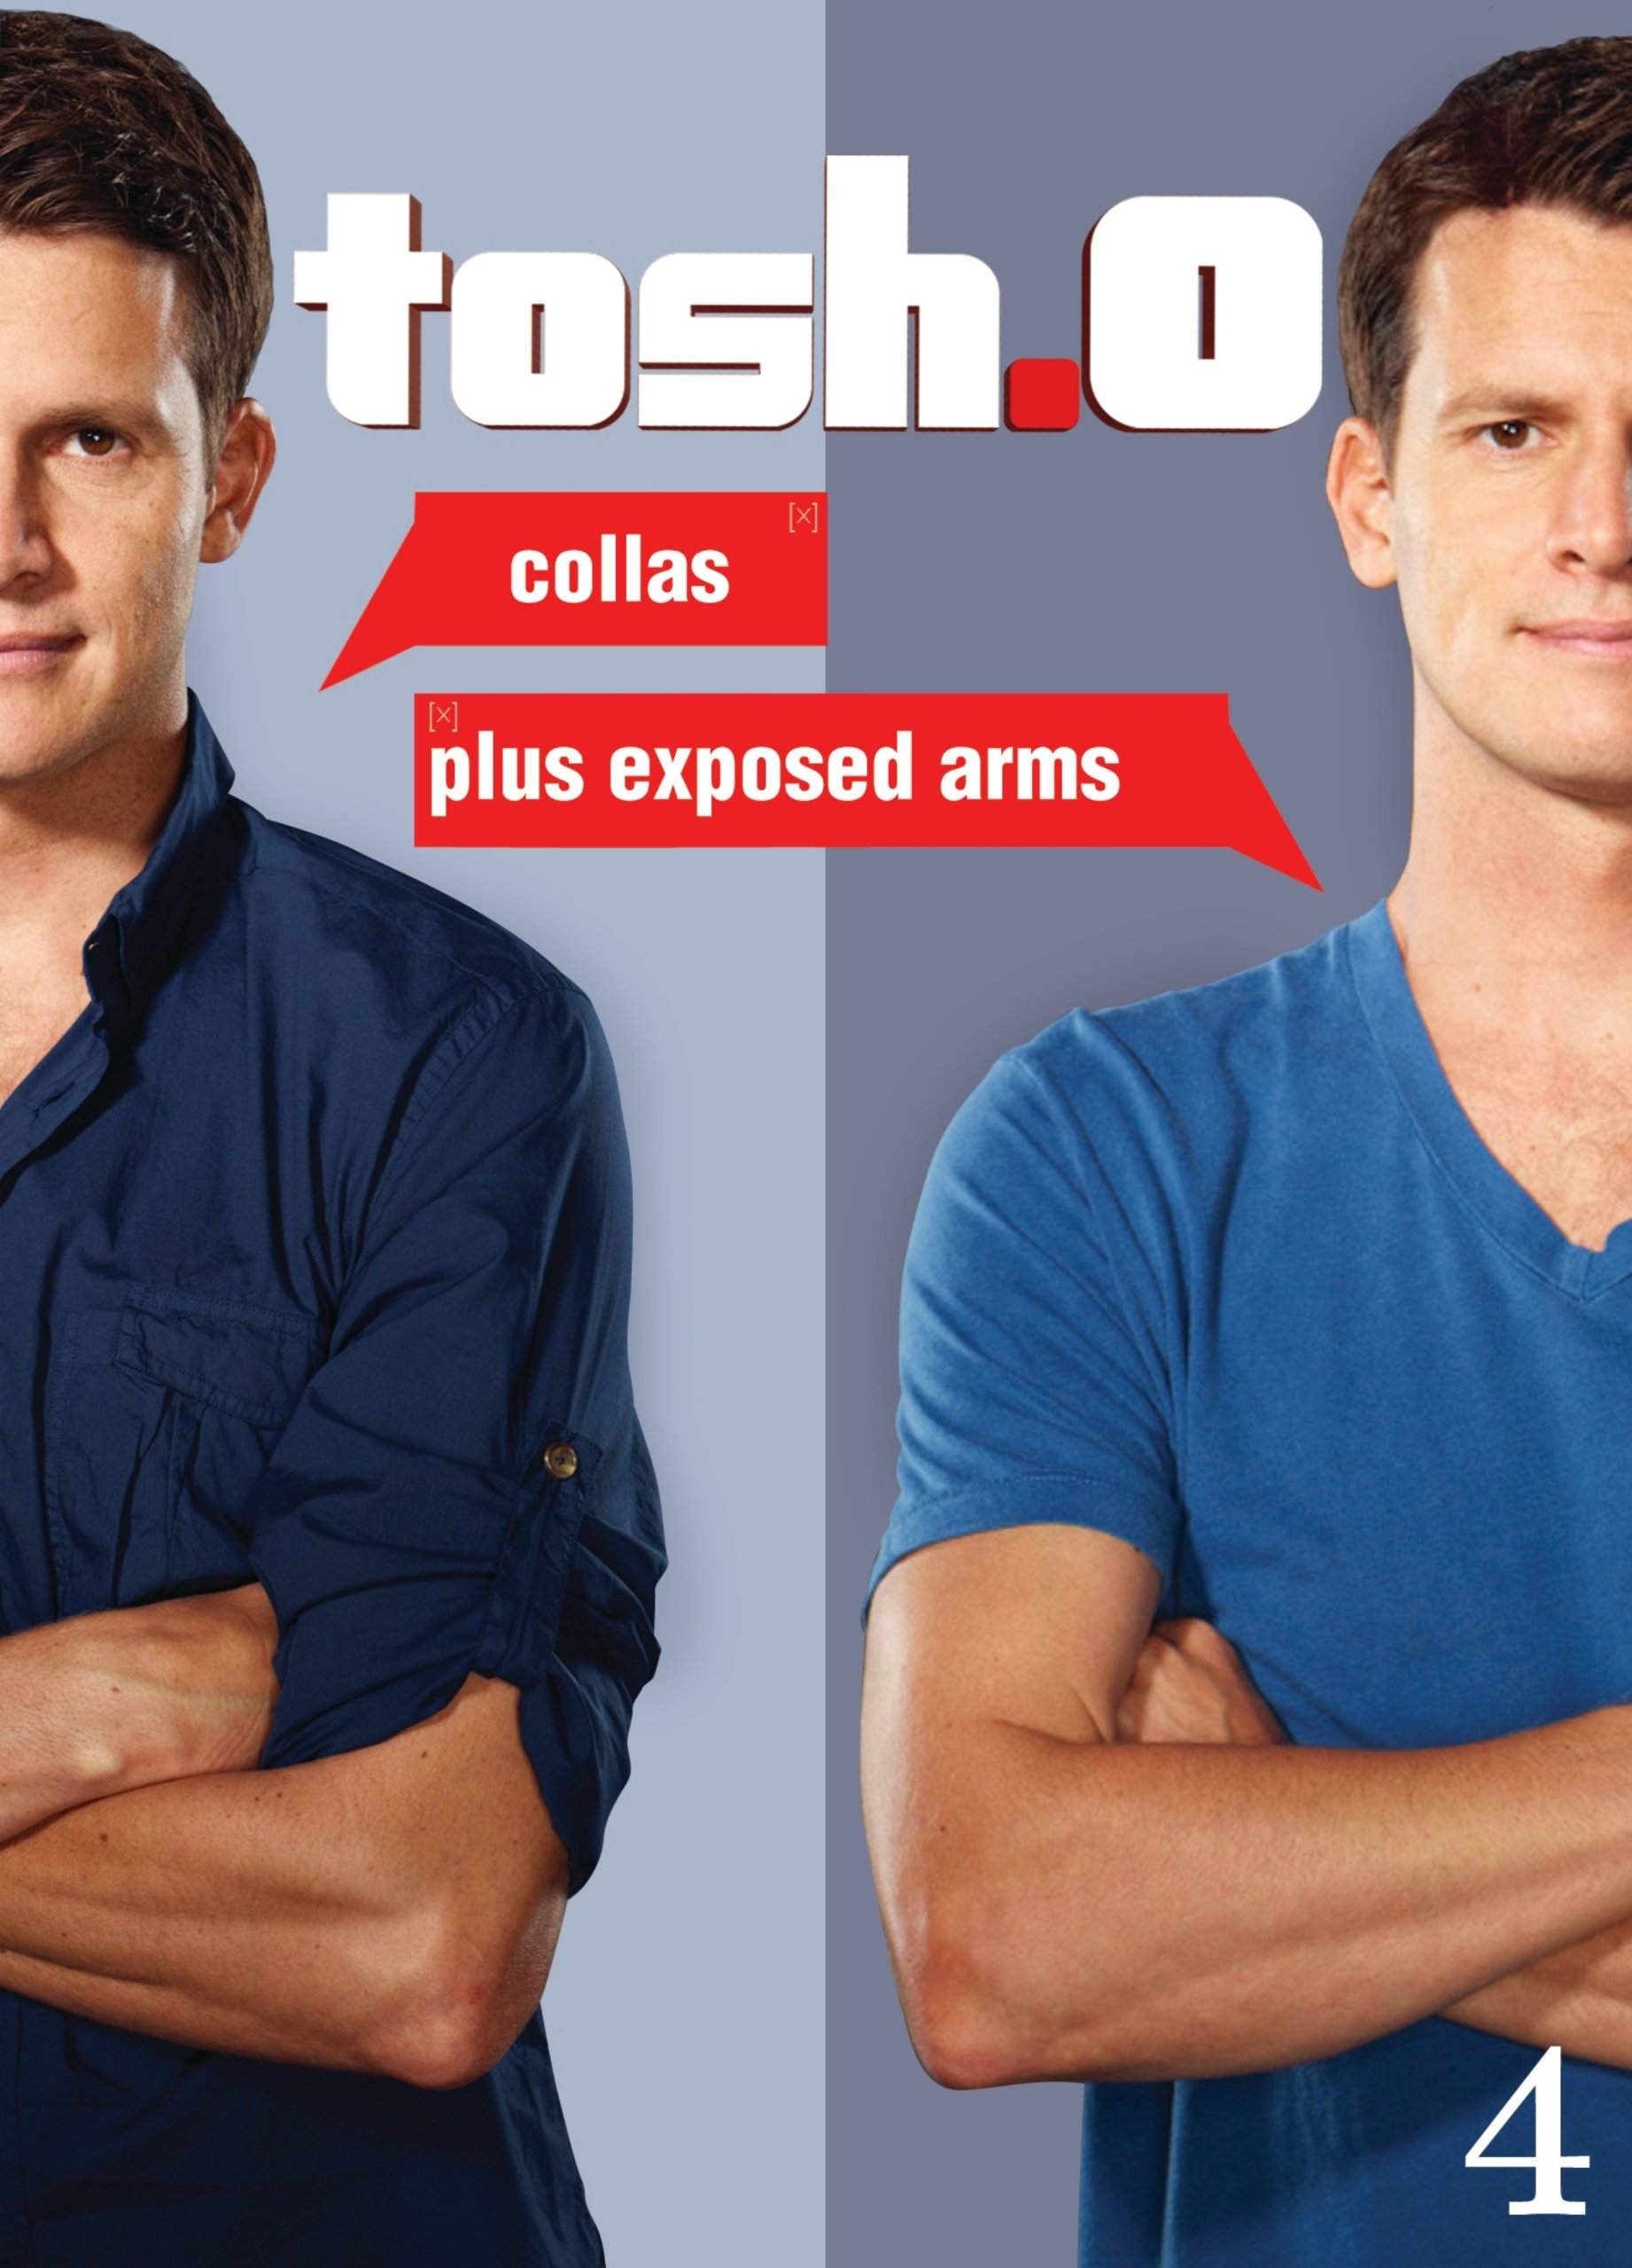 DVD : Daniel Tosh - Tosh.0: Collas Plus Exposed Arms (Widescreen, 3 Pack, Subtitled, Sensormatic)